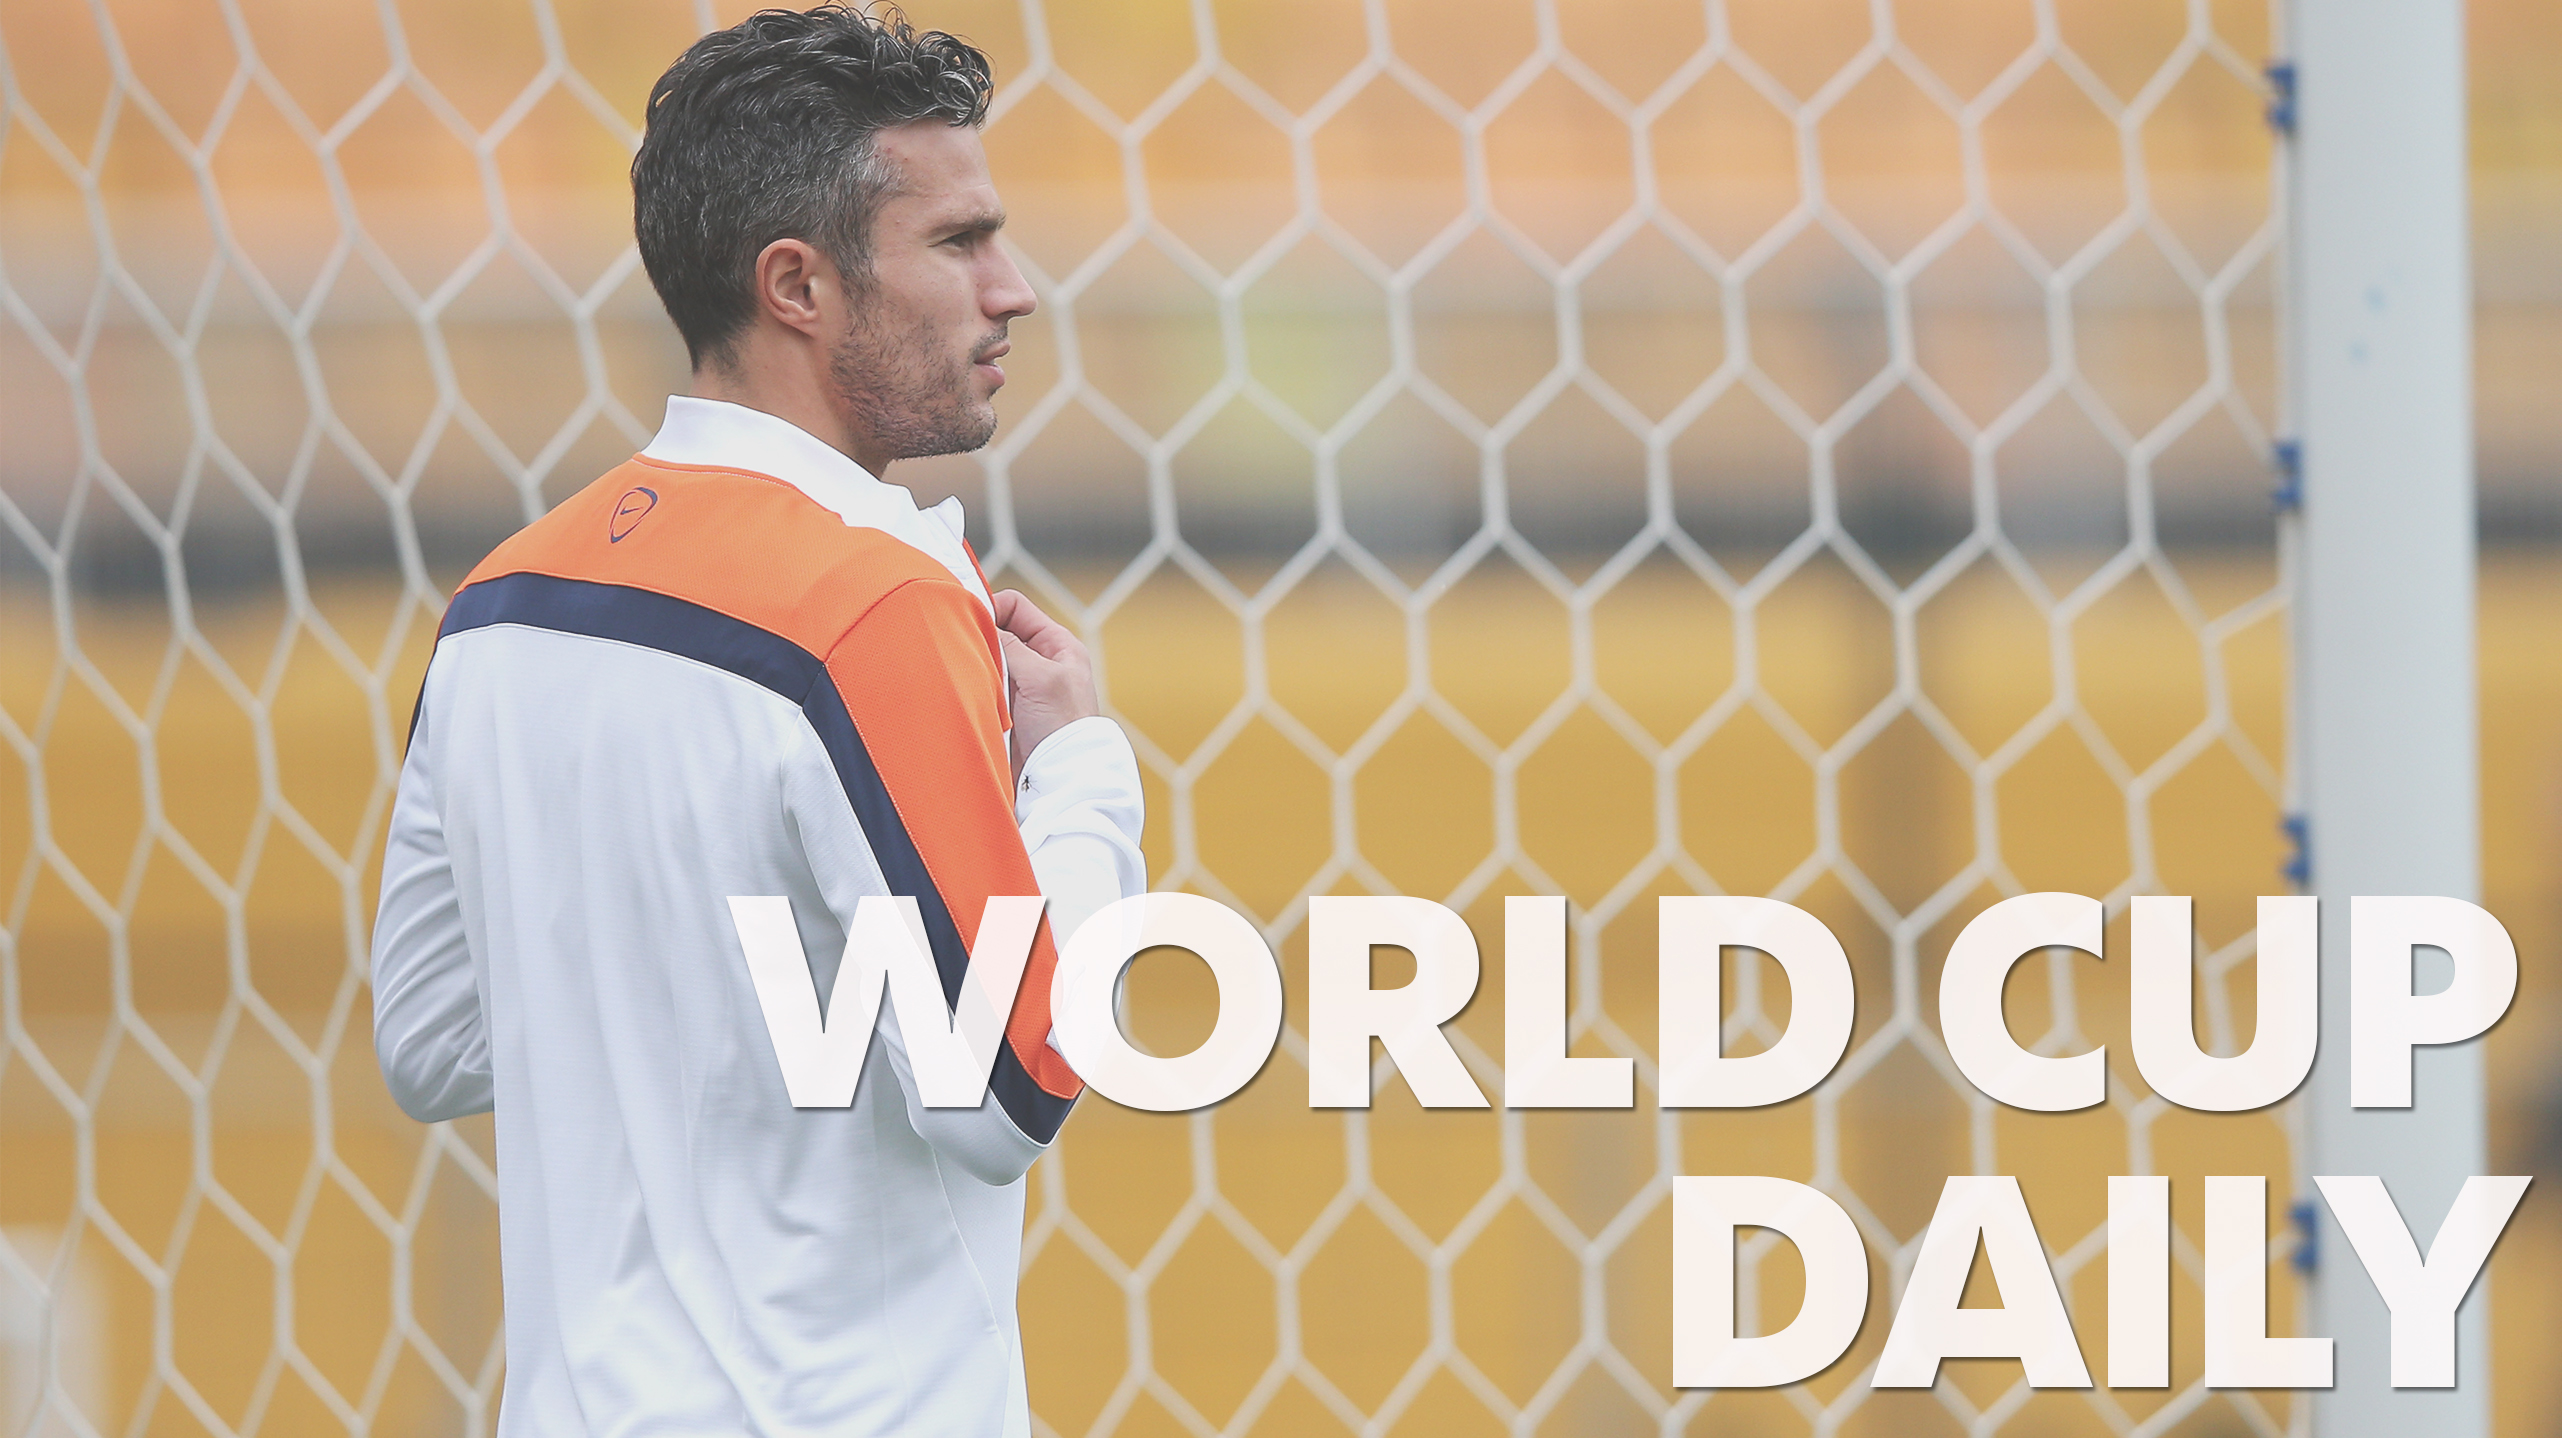 World Cup Daily: Who will face Germany in the final?